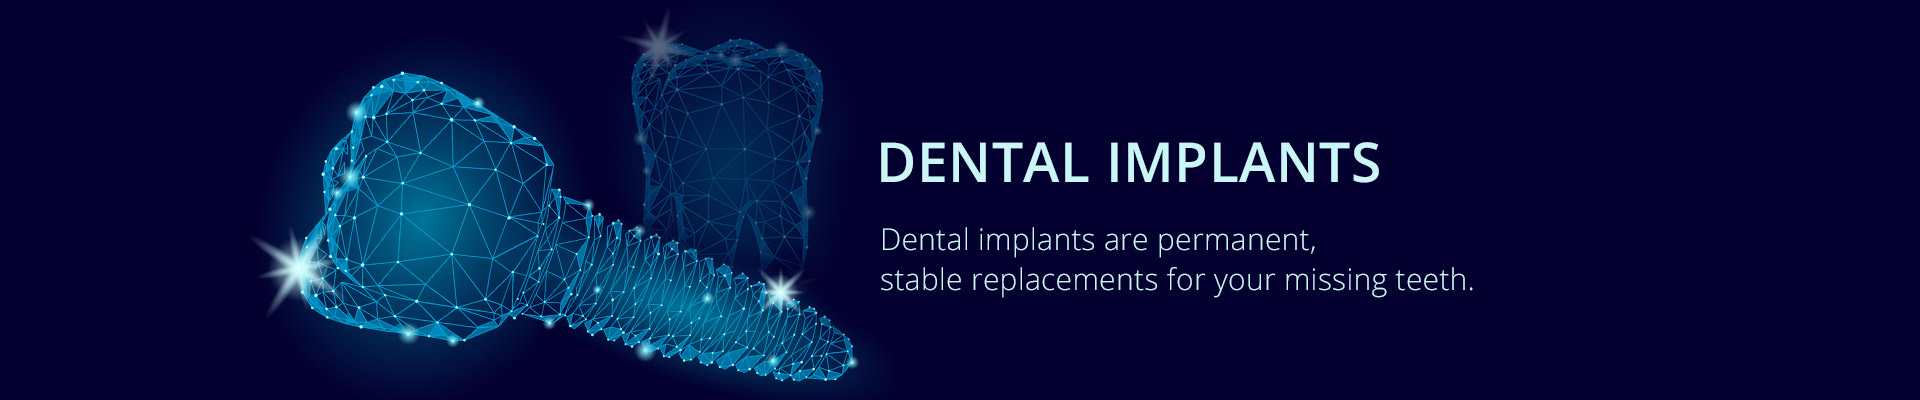 Dental Implants by Dr. William Forero, DMD